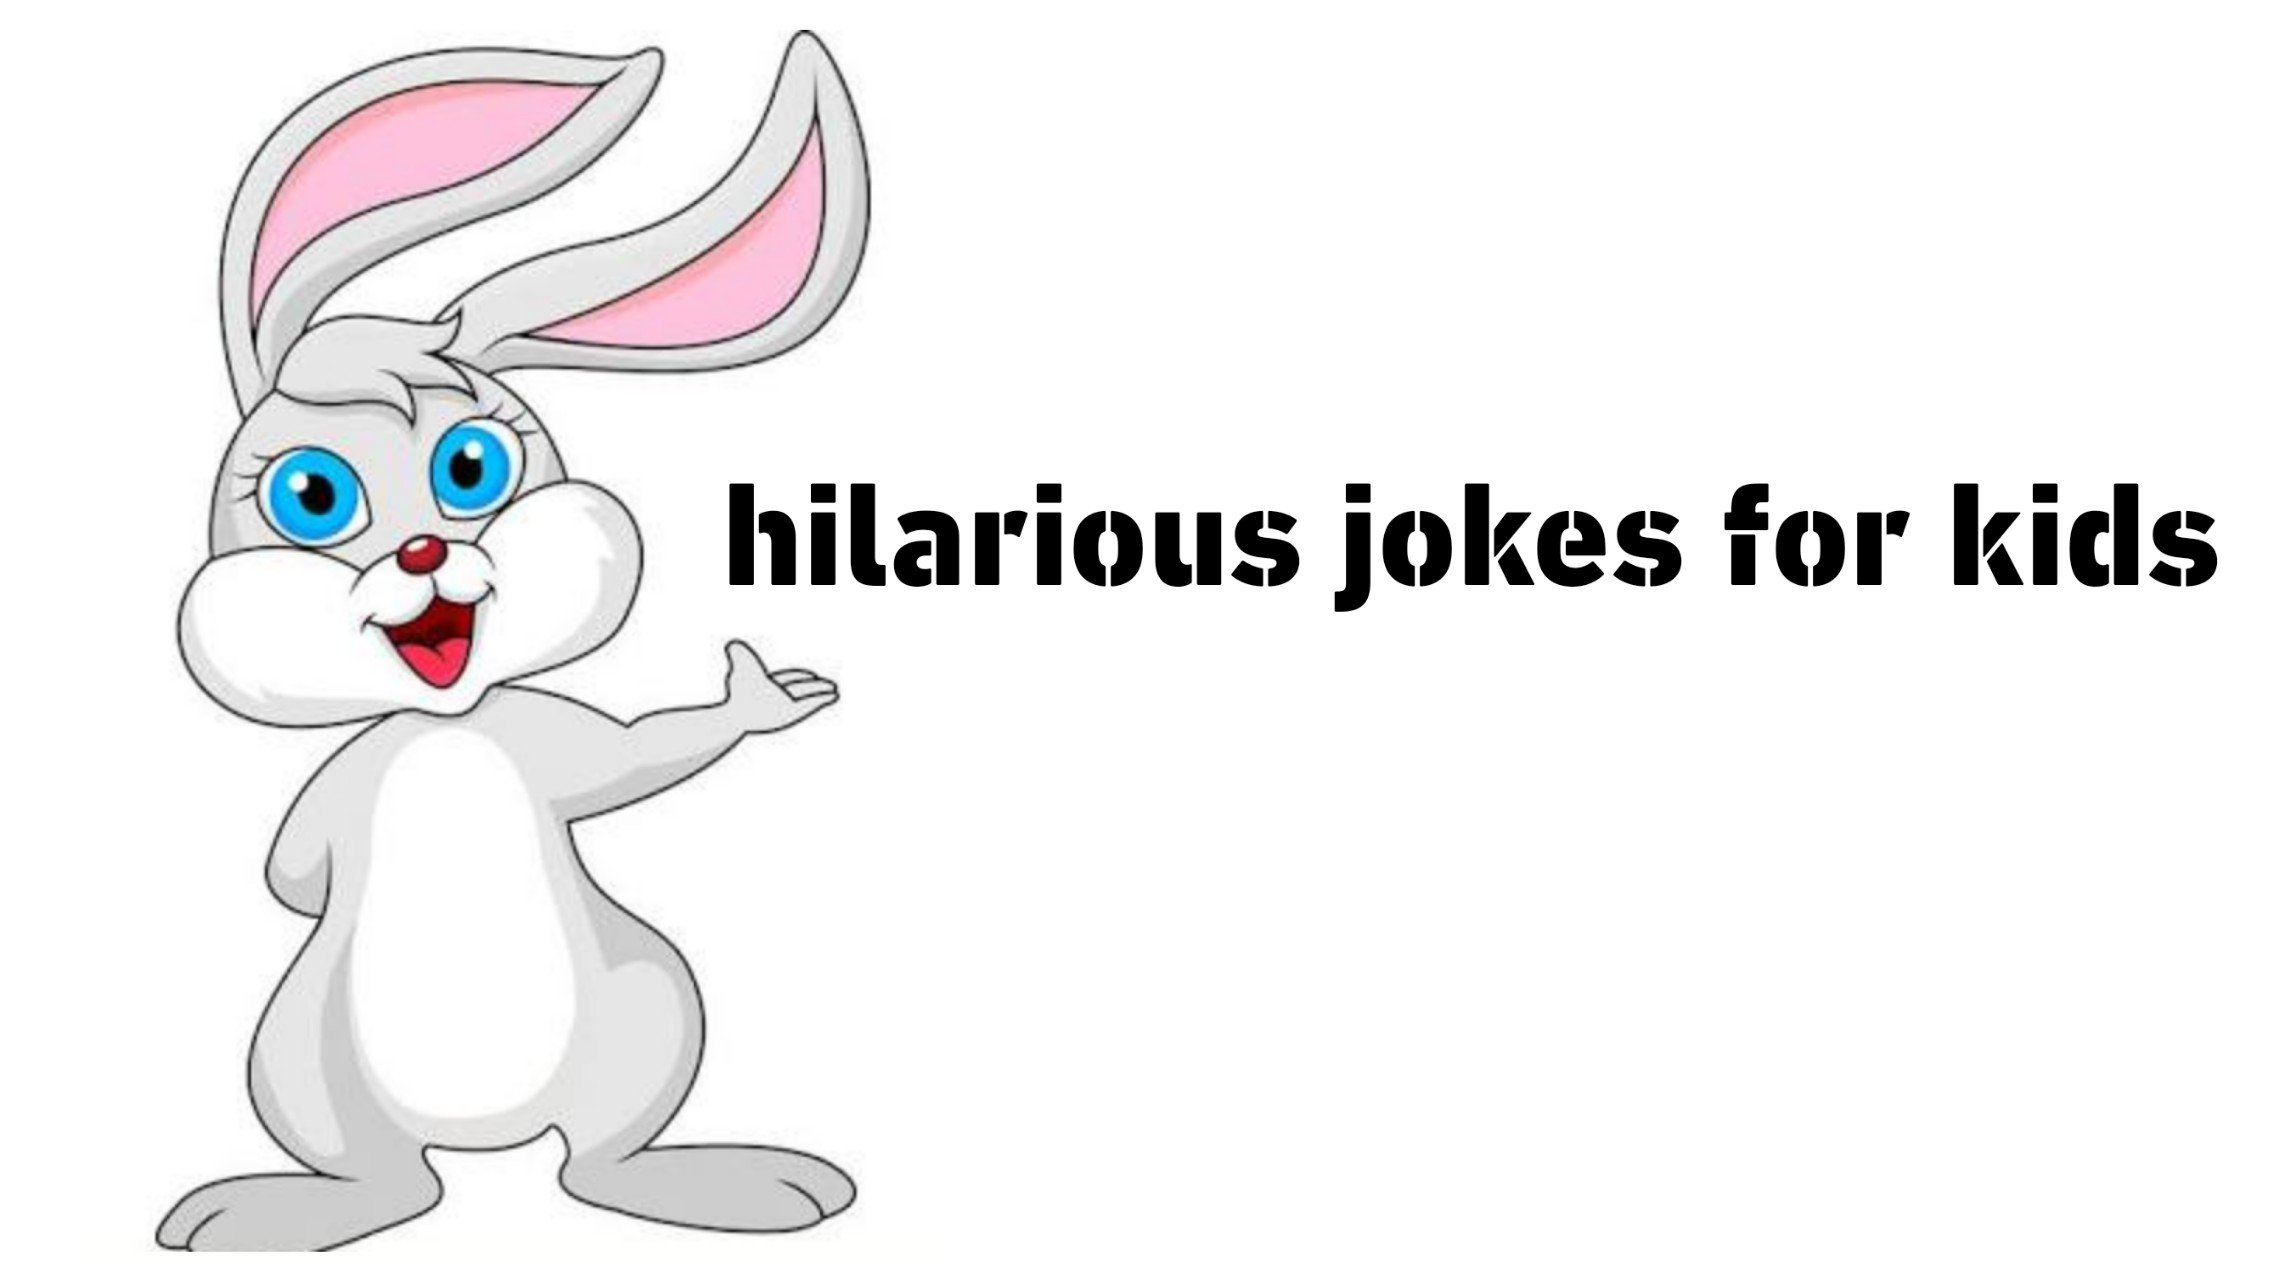 50+ Funny rabbit jokes for kids